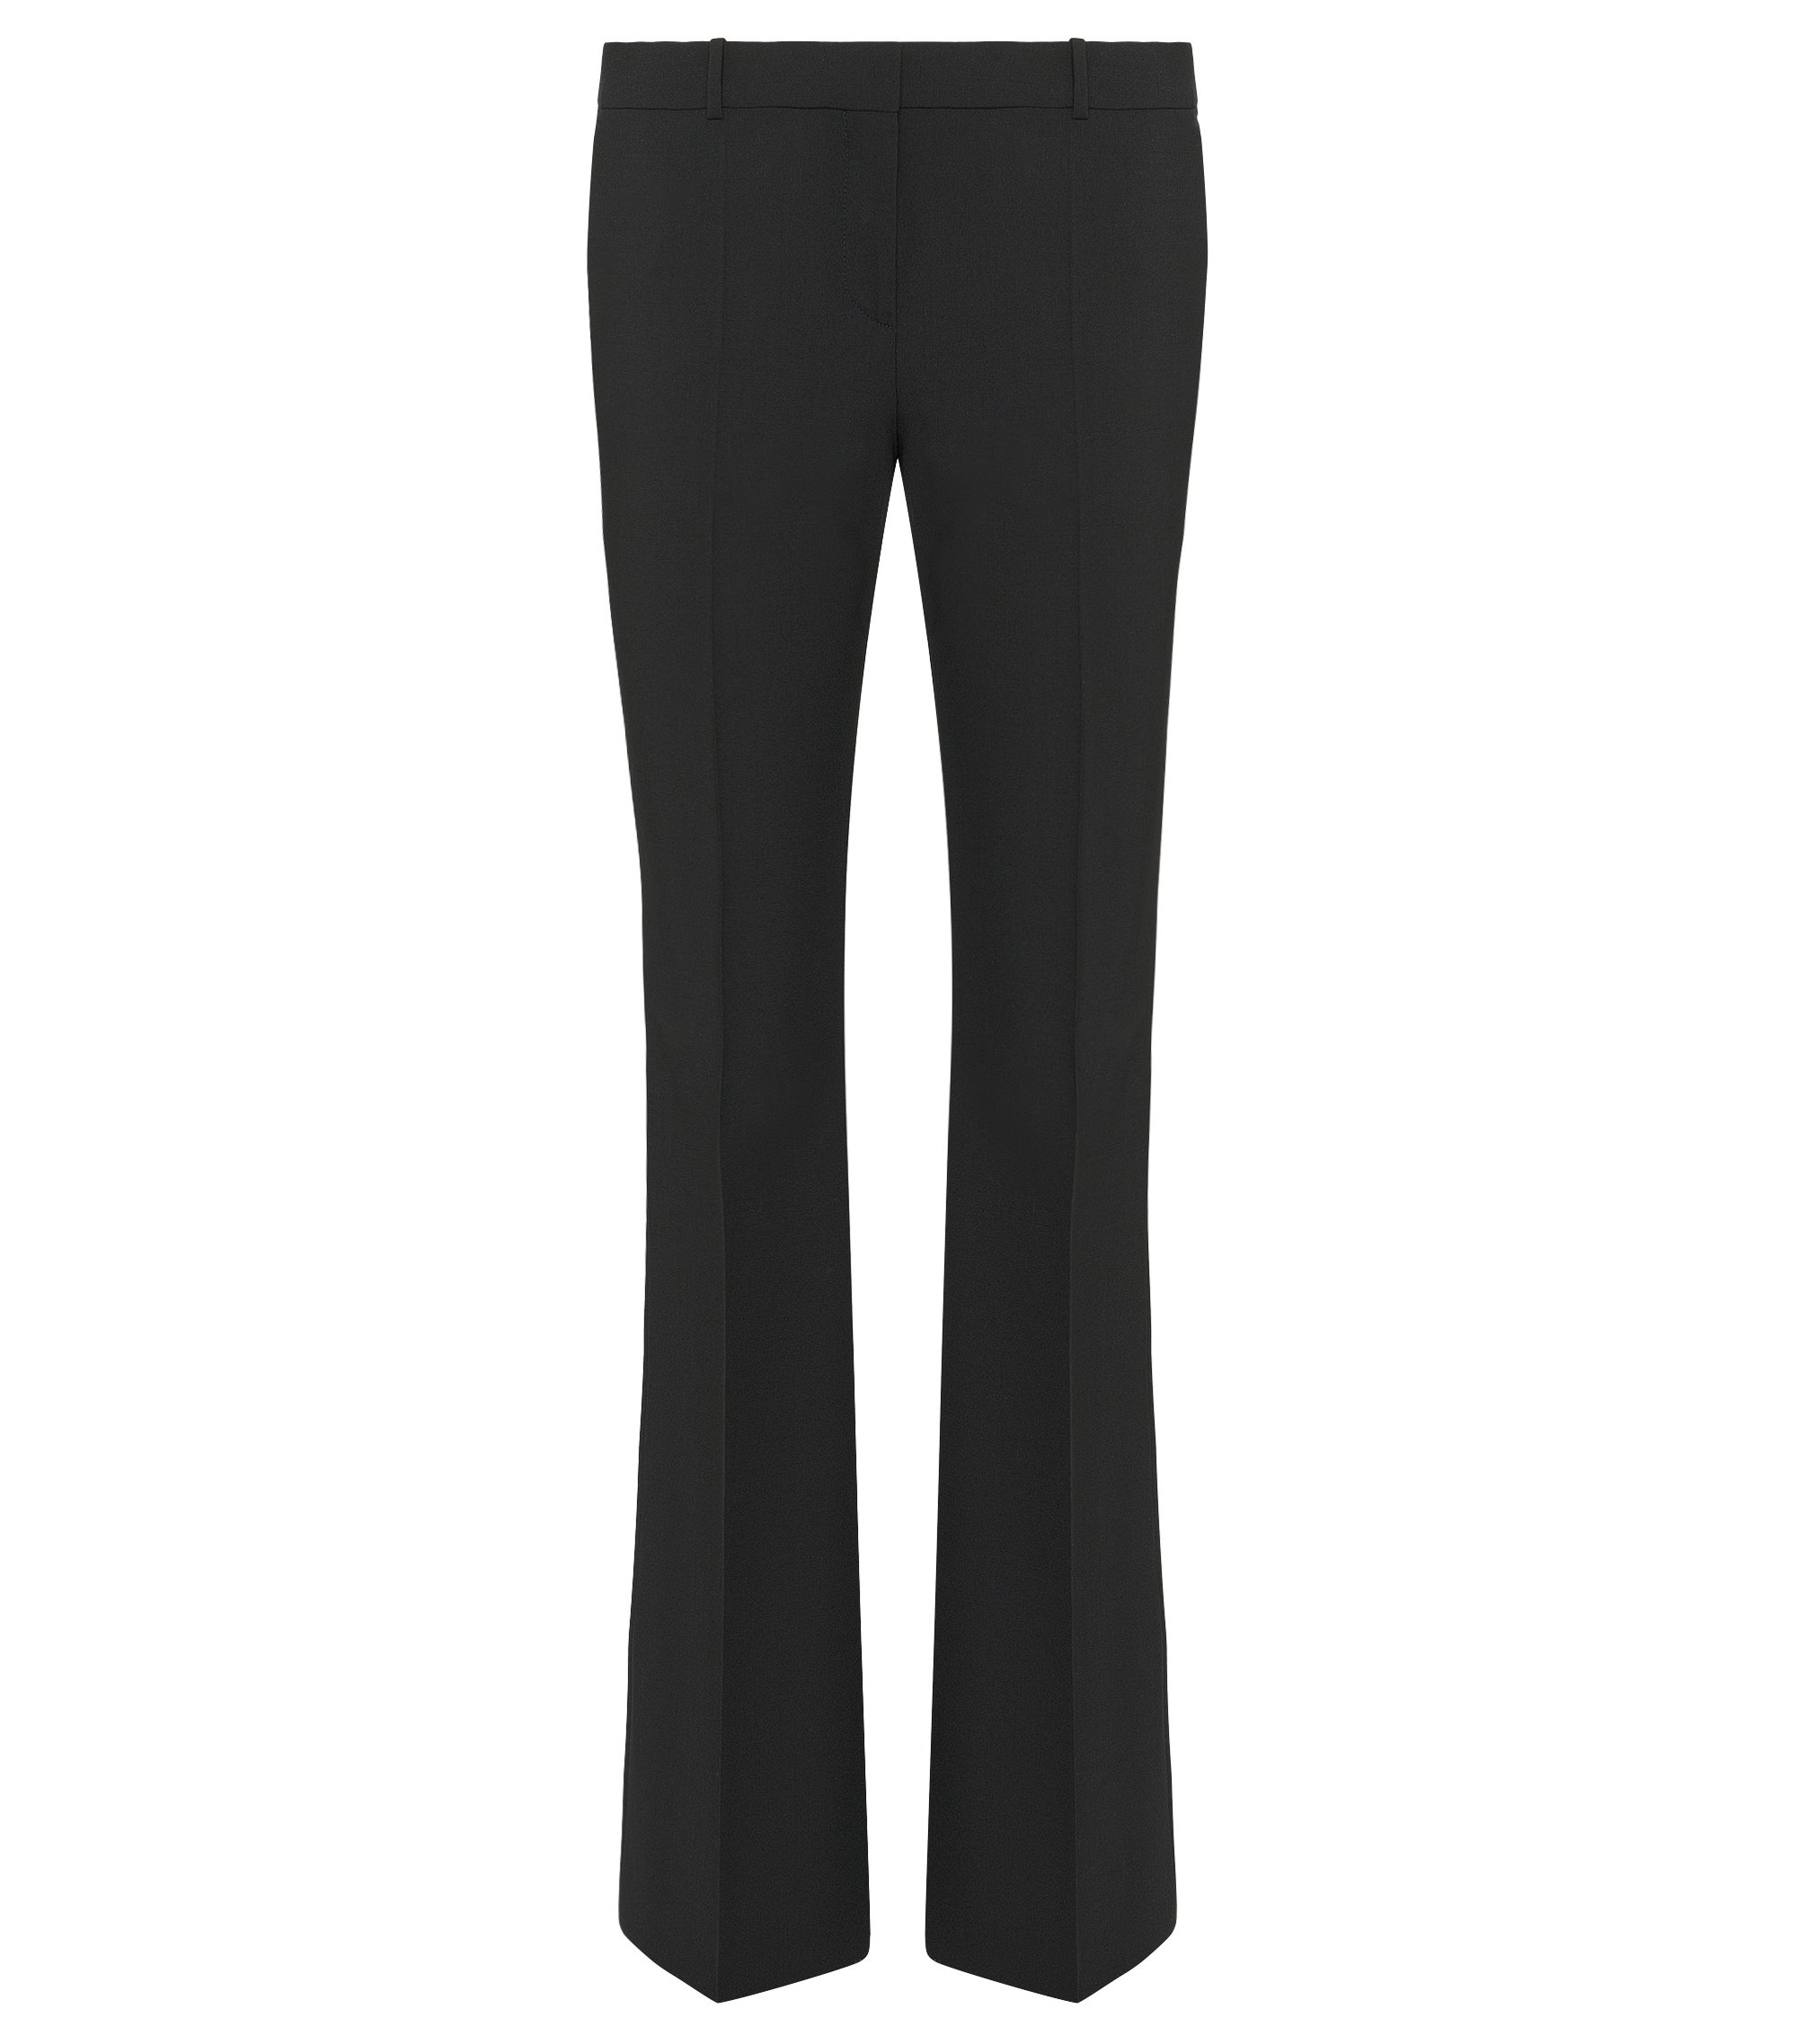 Stretch Virgin Wool Boot Cut Dress Pant | Tulea, Black